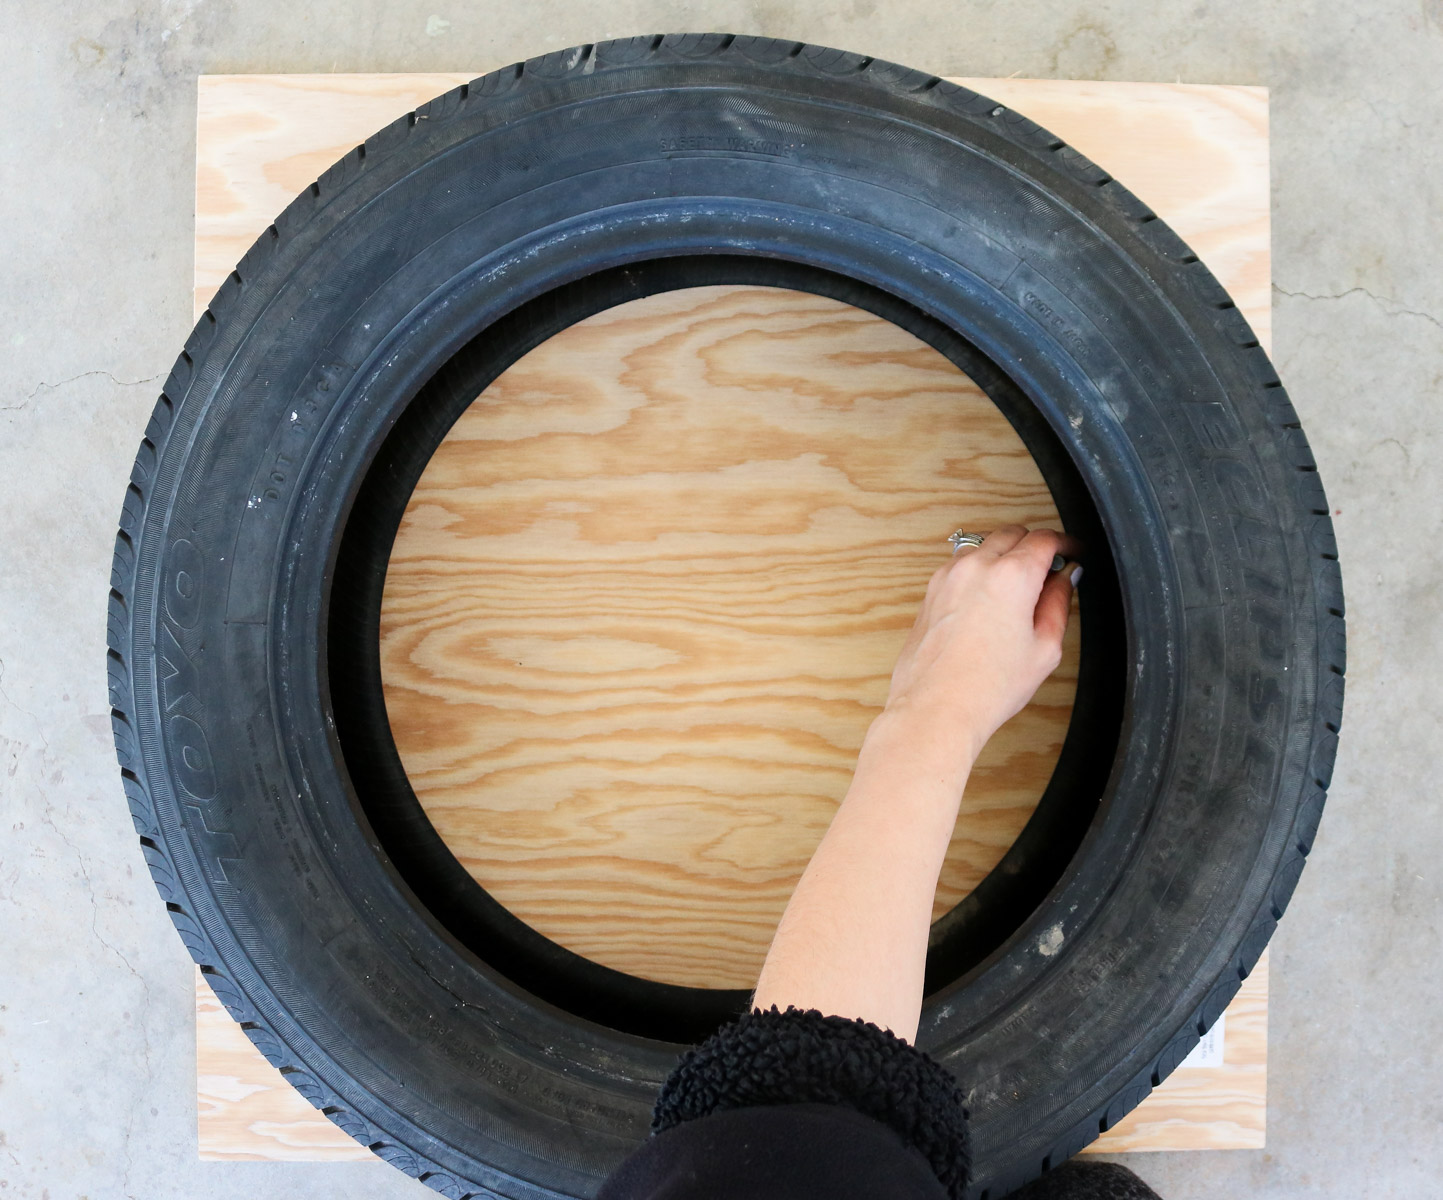 tracing the tire onto plywood